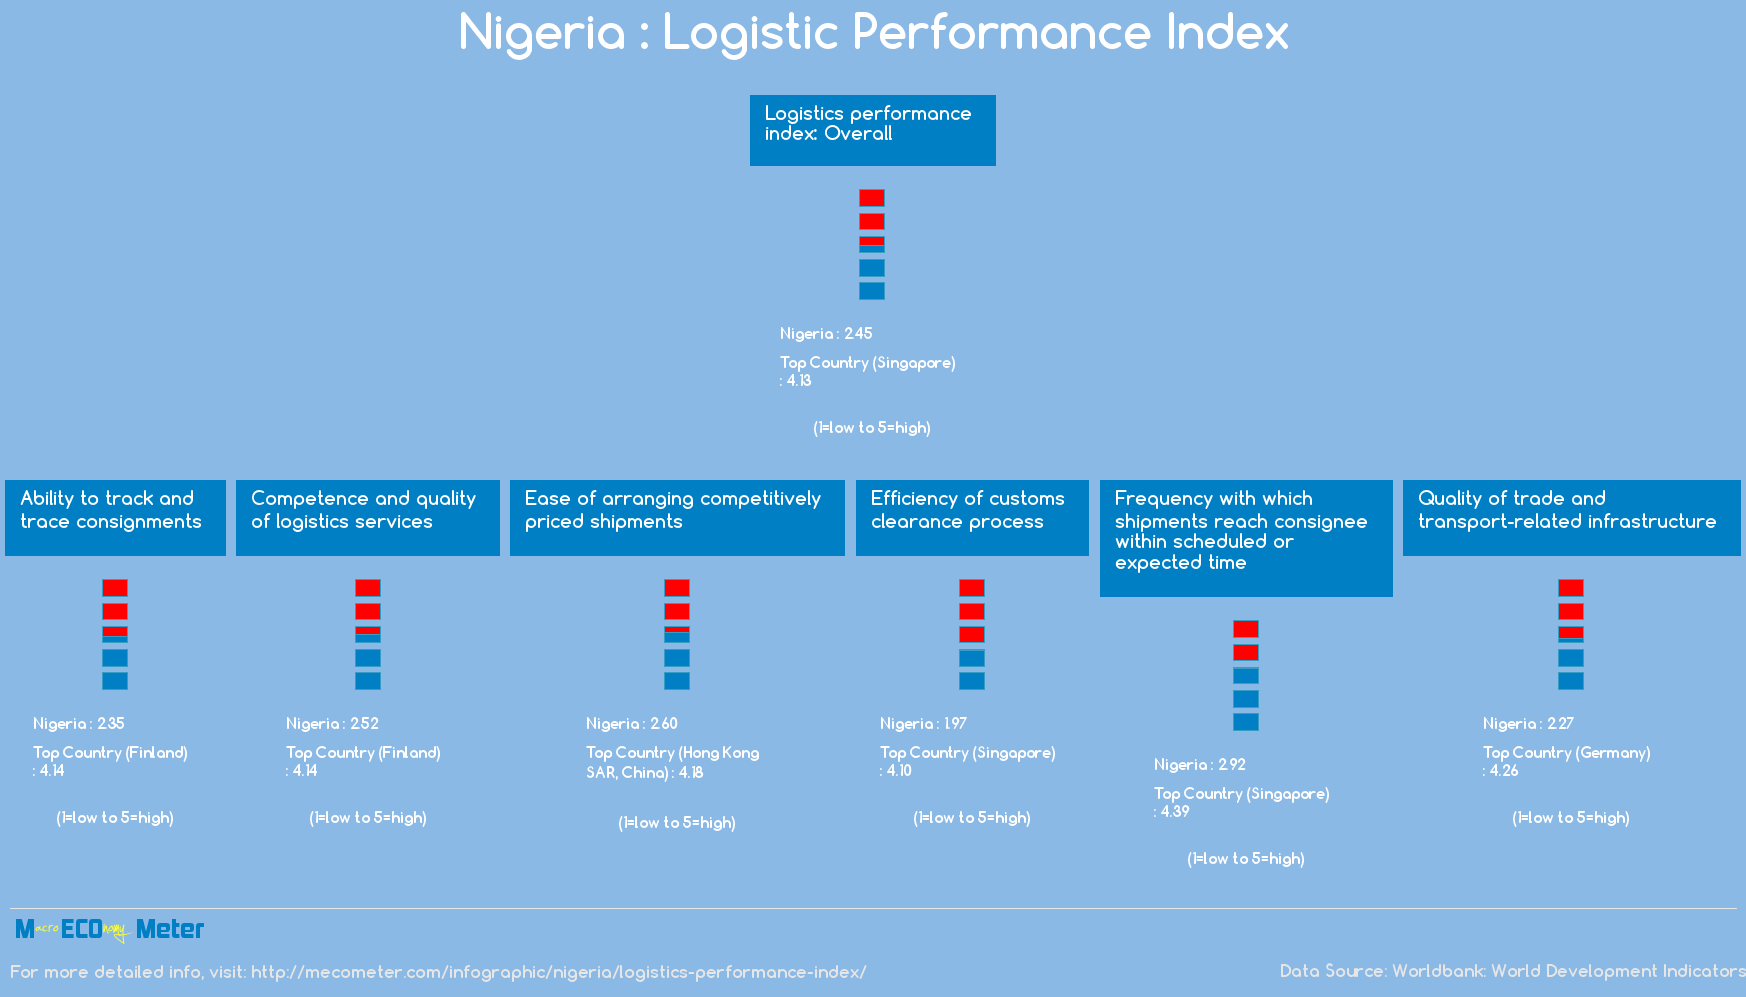 Nigeria : Logistic Performance Index